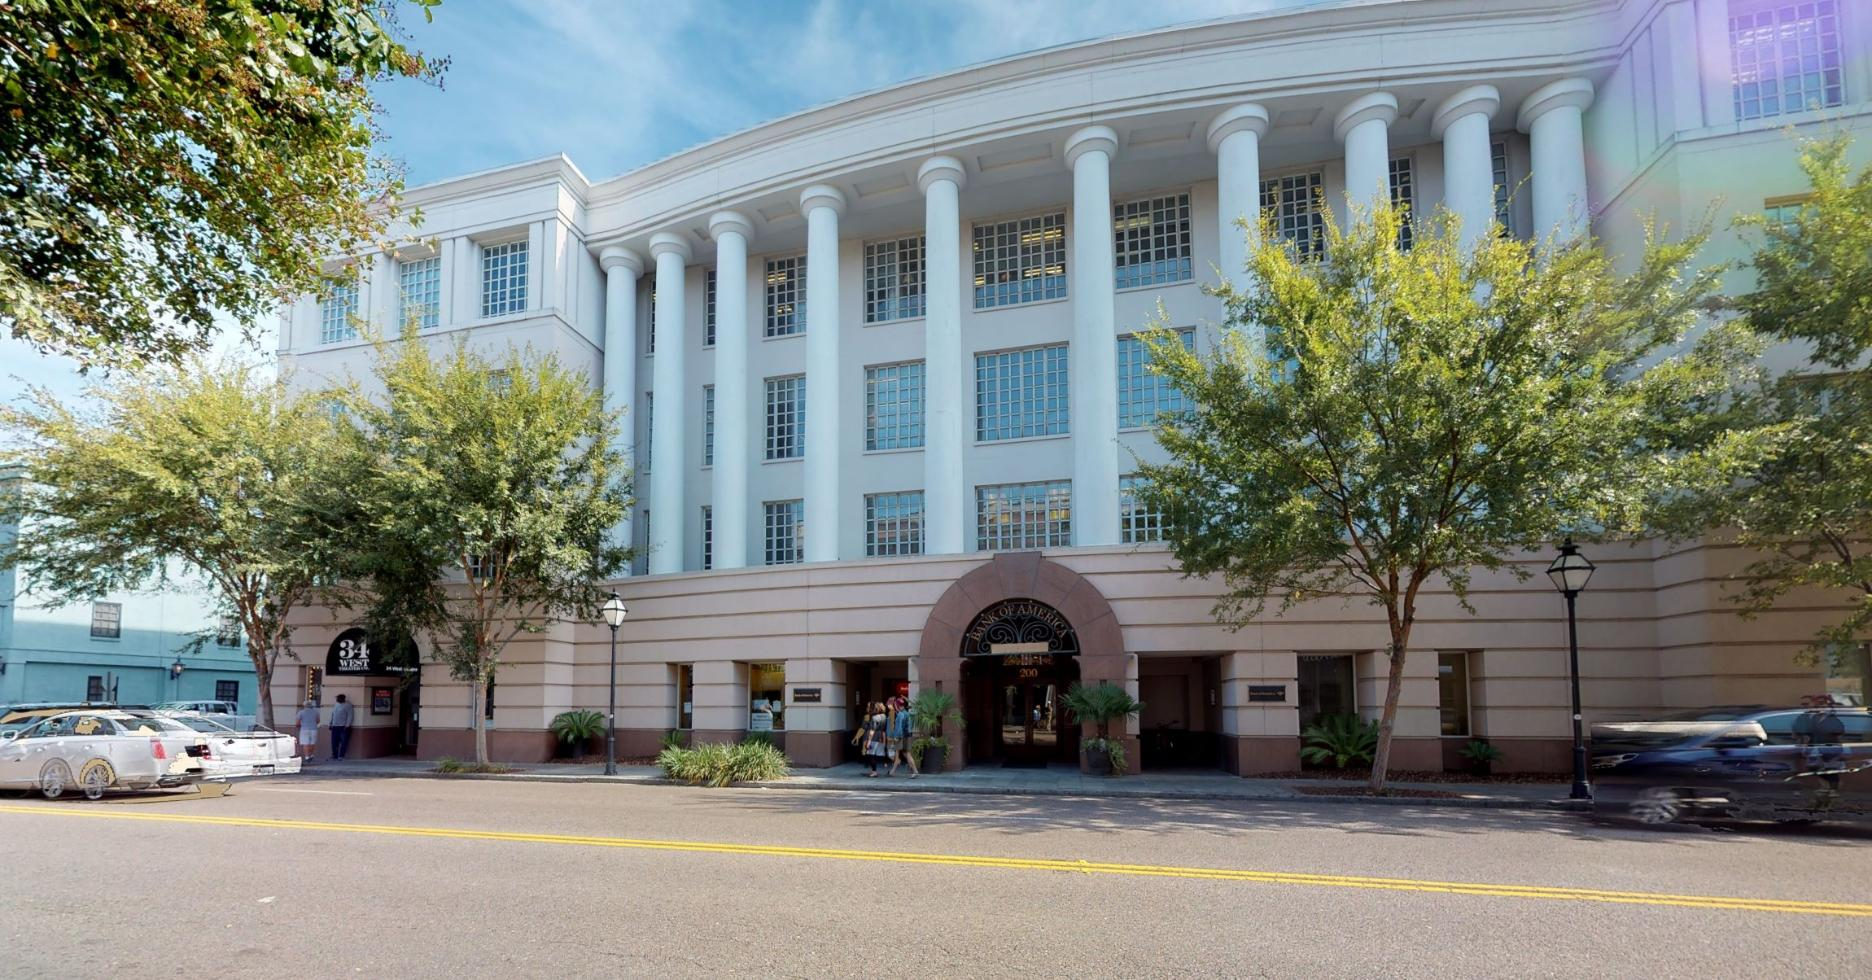 Bank of America financial center with drive-thru ATM | 200 Meeting St STE 100, Charleston, SC 29401